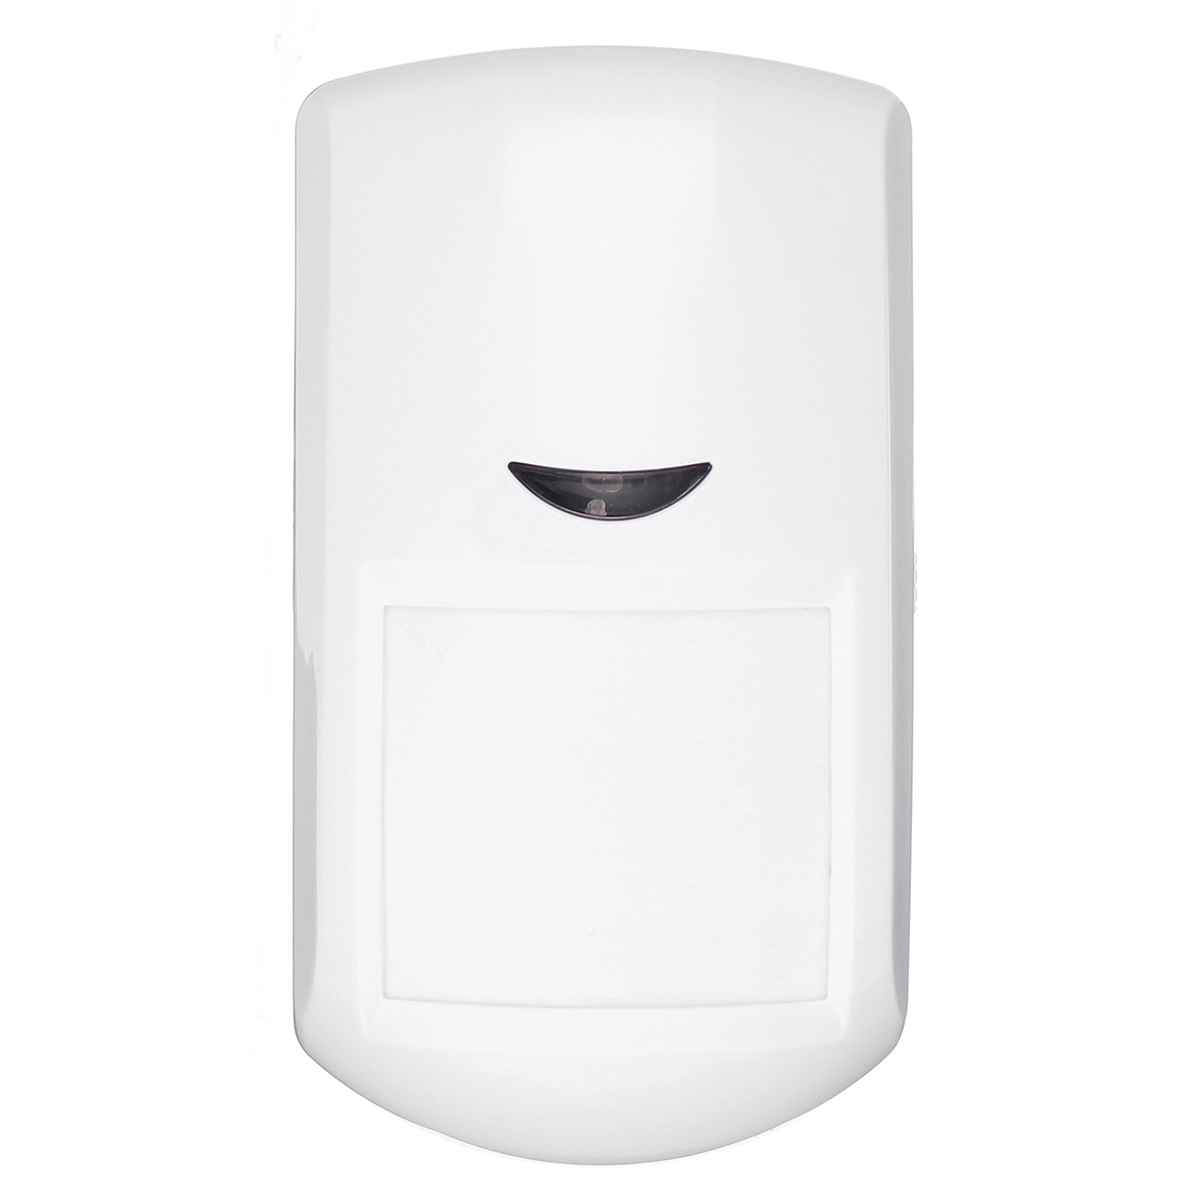 Wireless Intelligent PIR Infrared Sensor Security Detector Home Alarm System